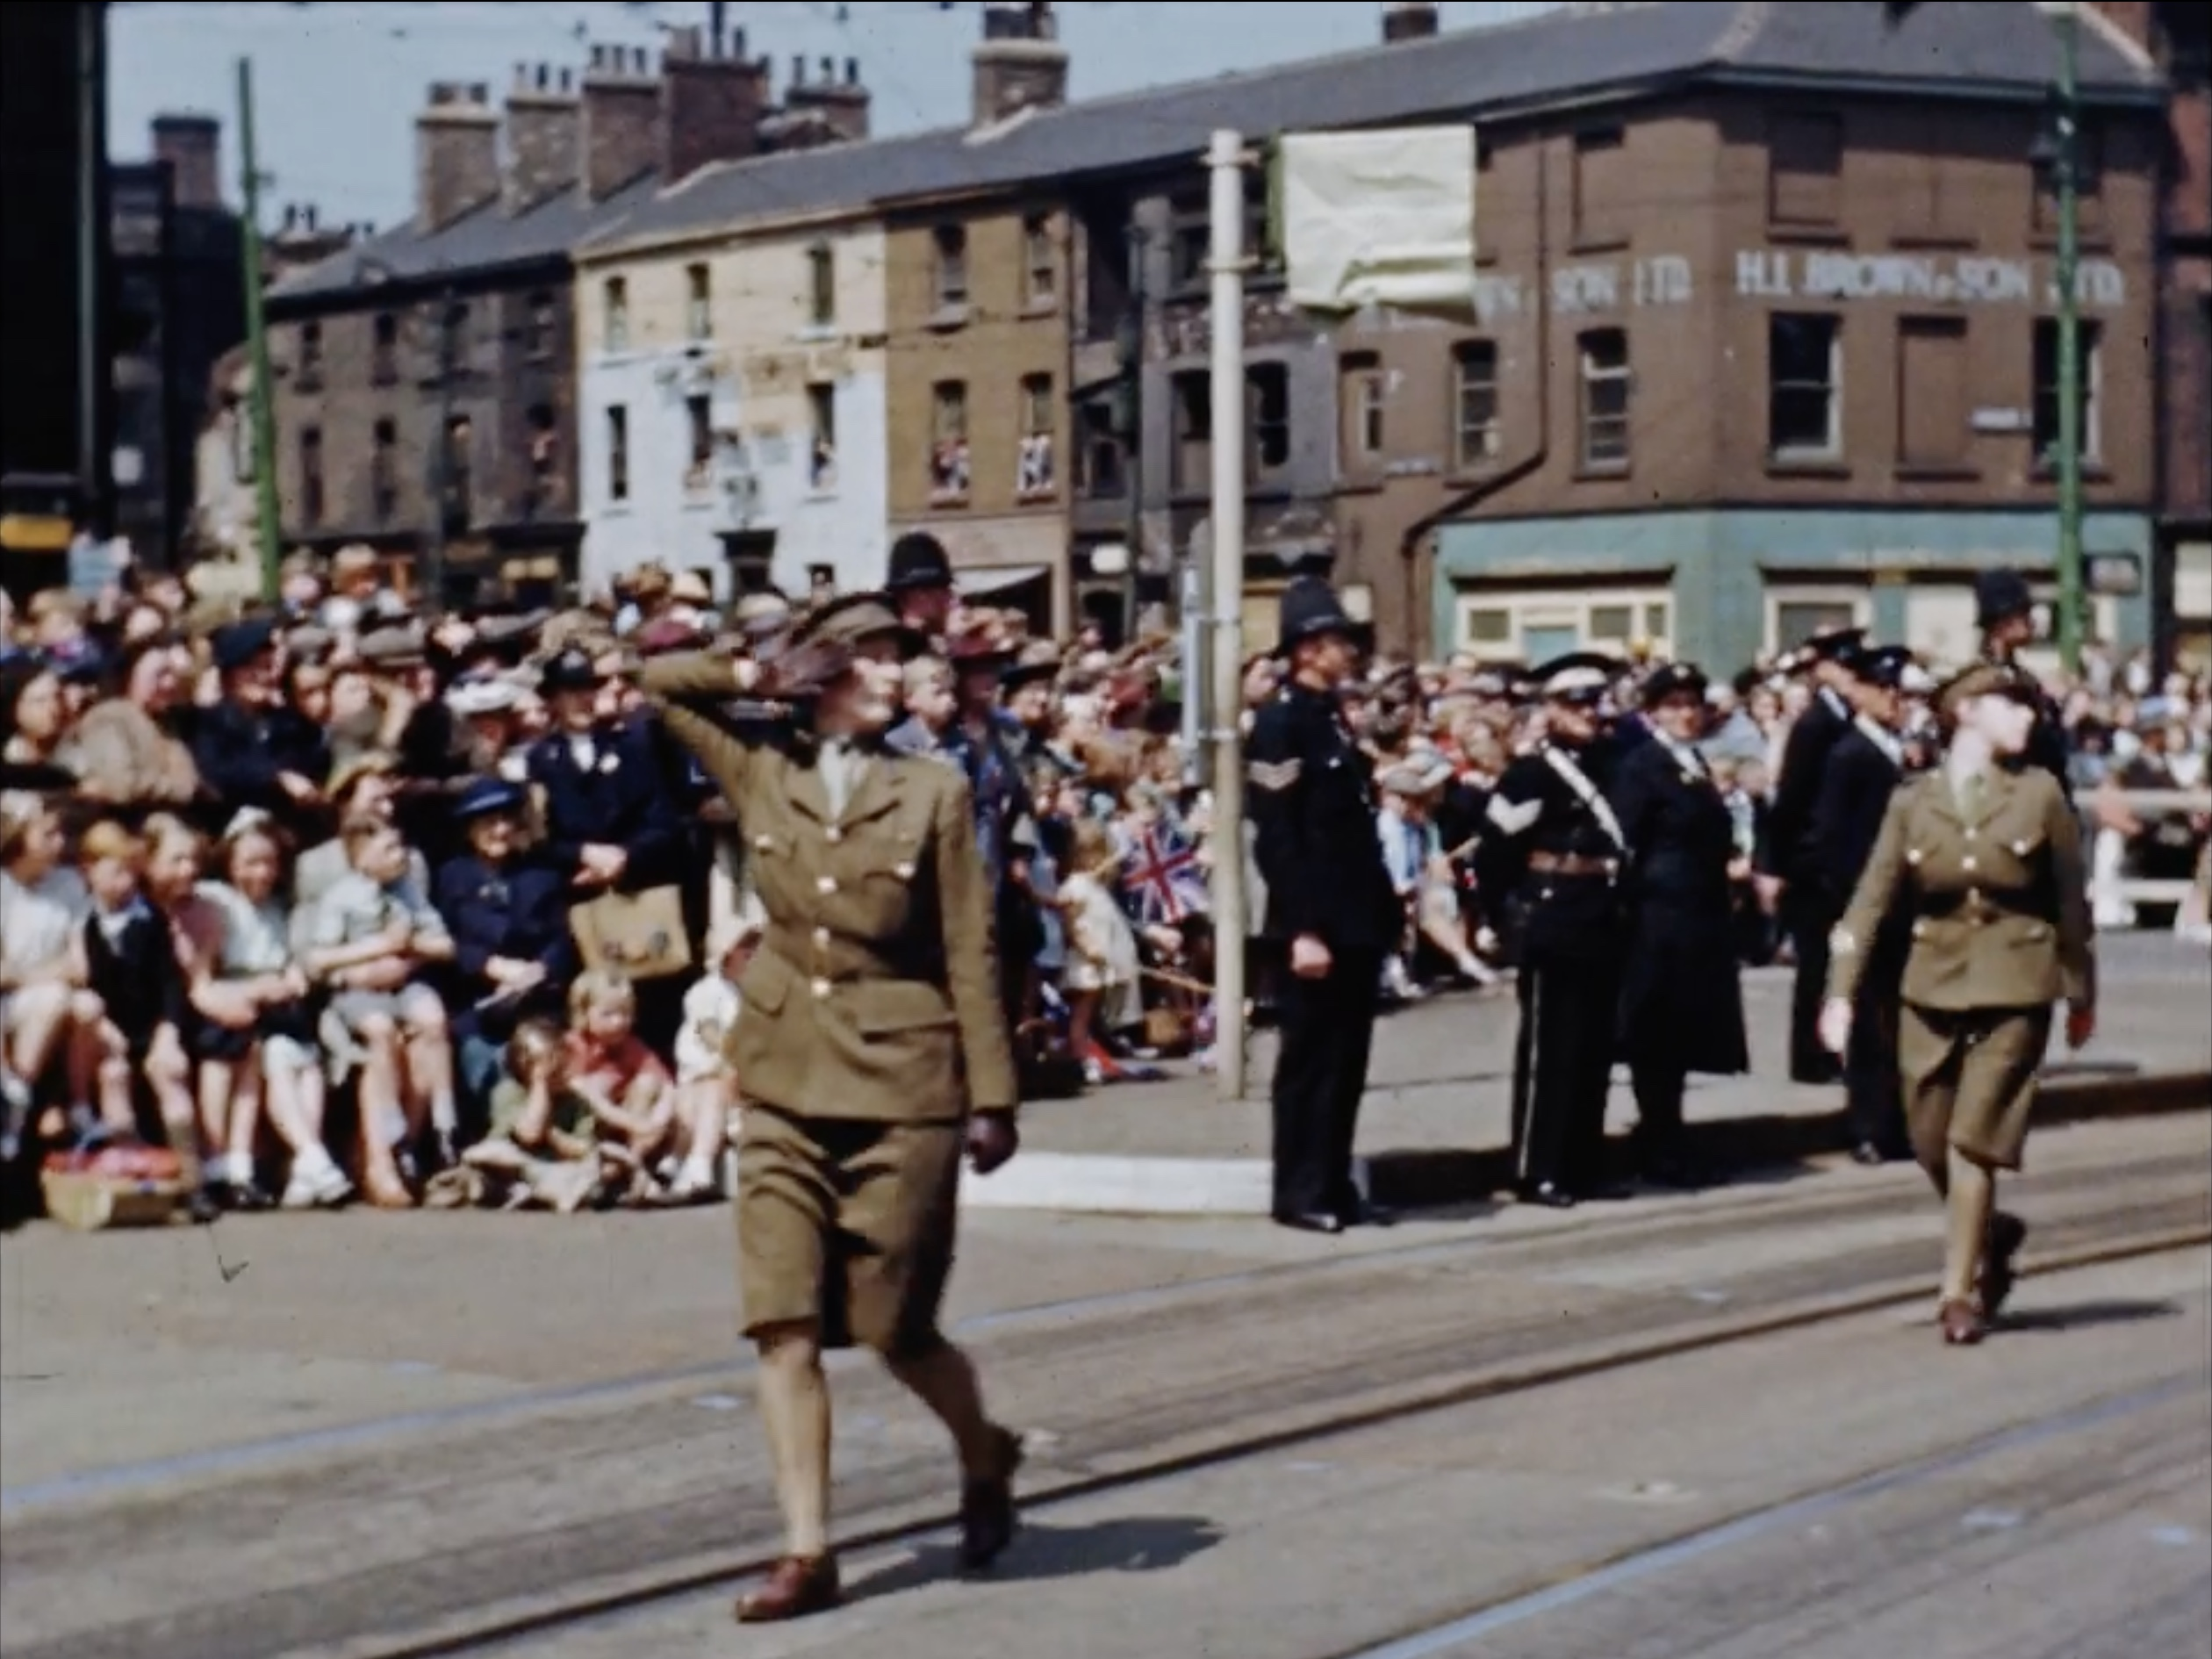 Photos from Sheffield events in the city during the Second World War